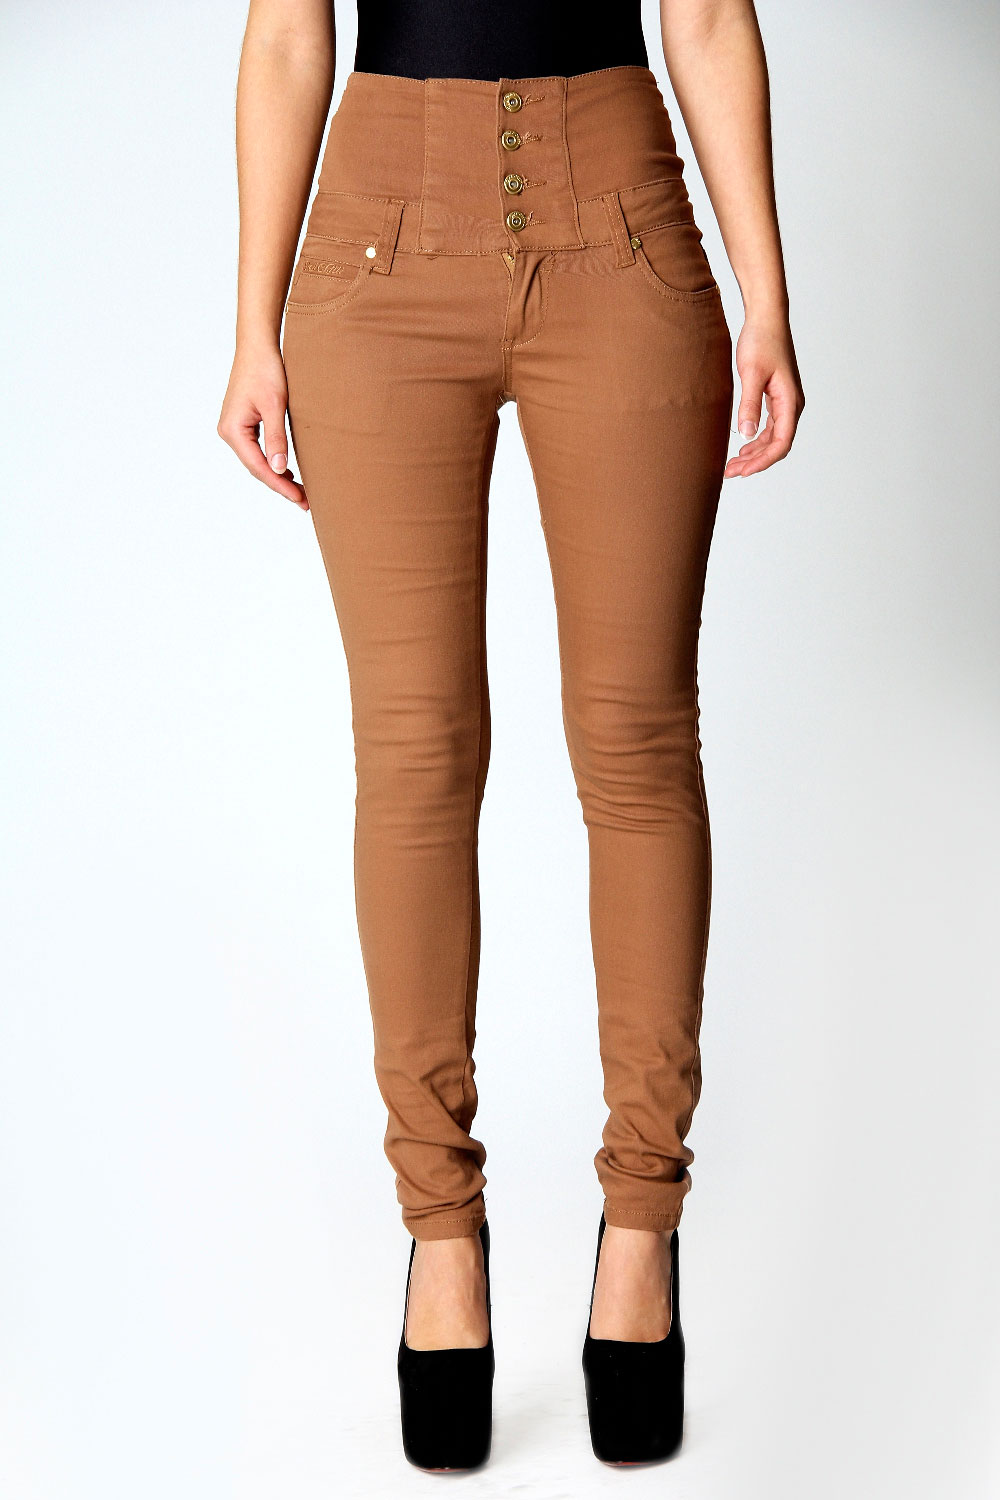 High Waisted Tan Jeans - Jeans Am